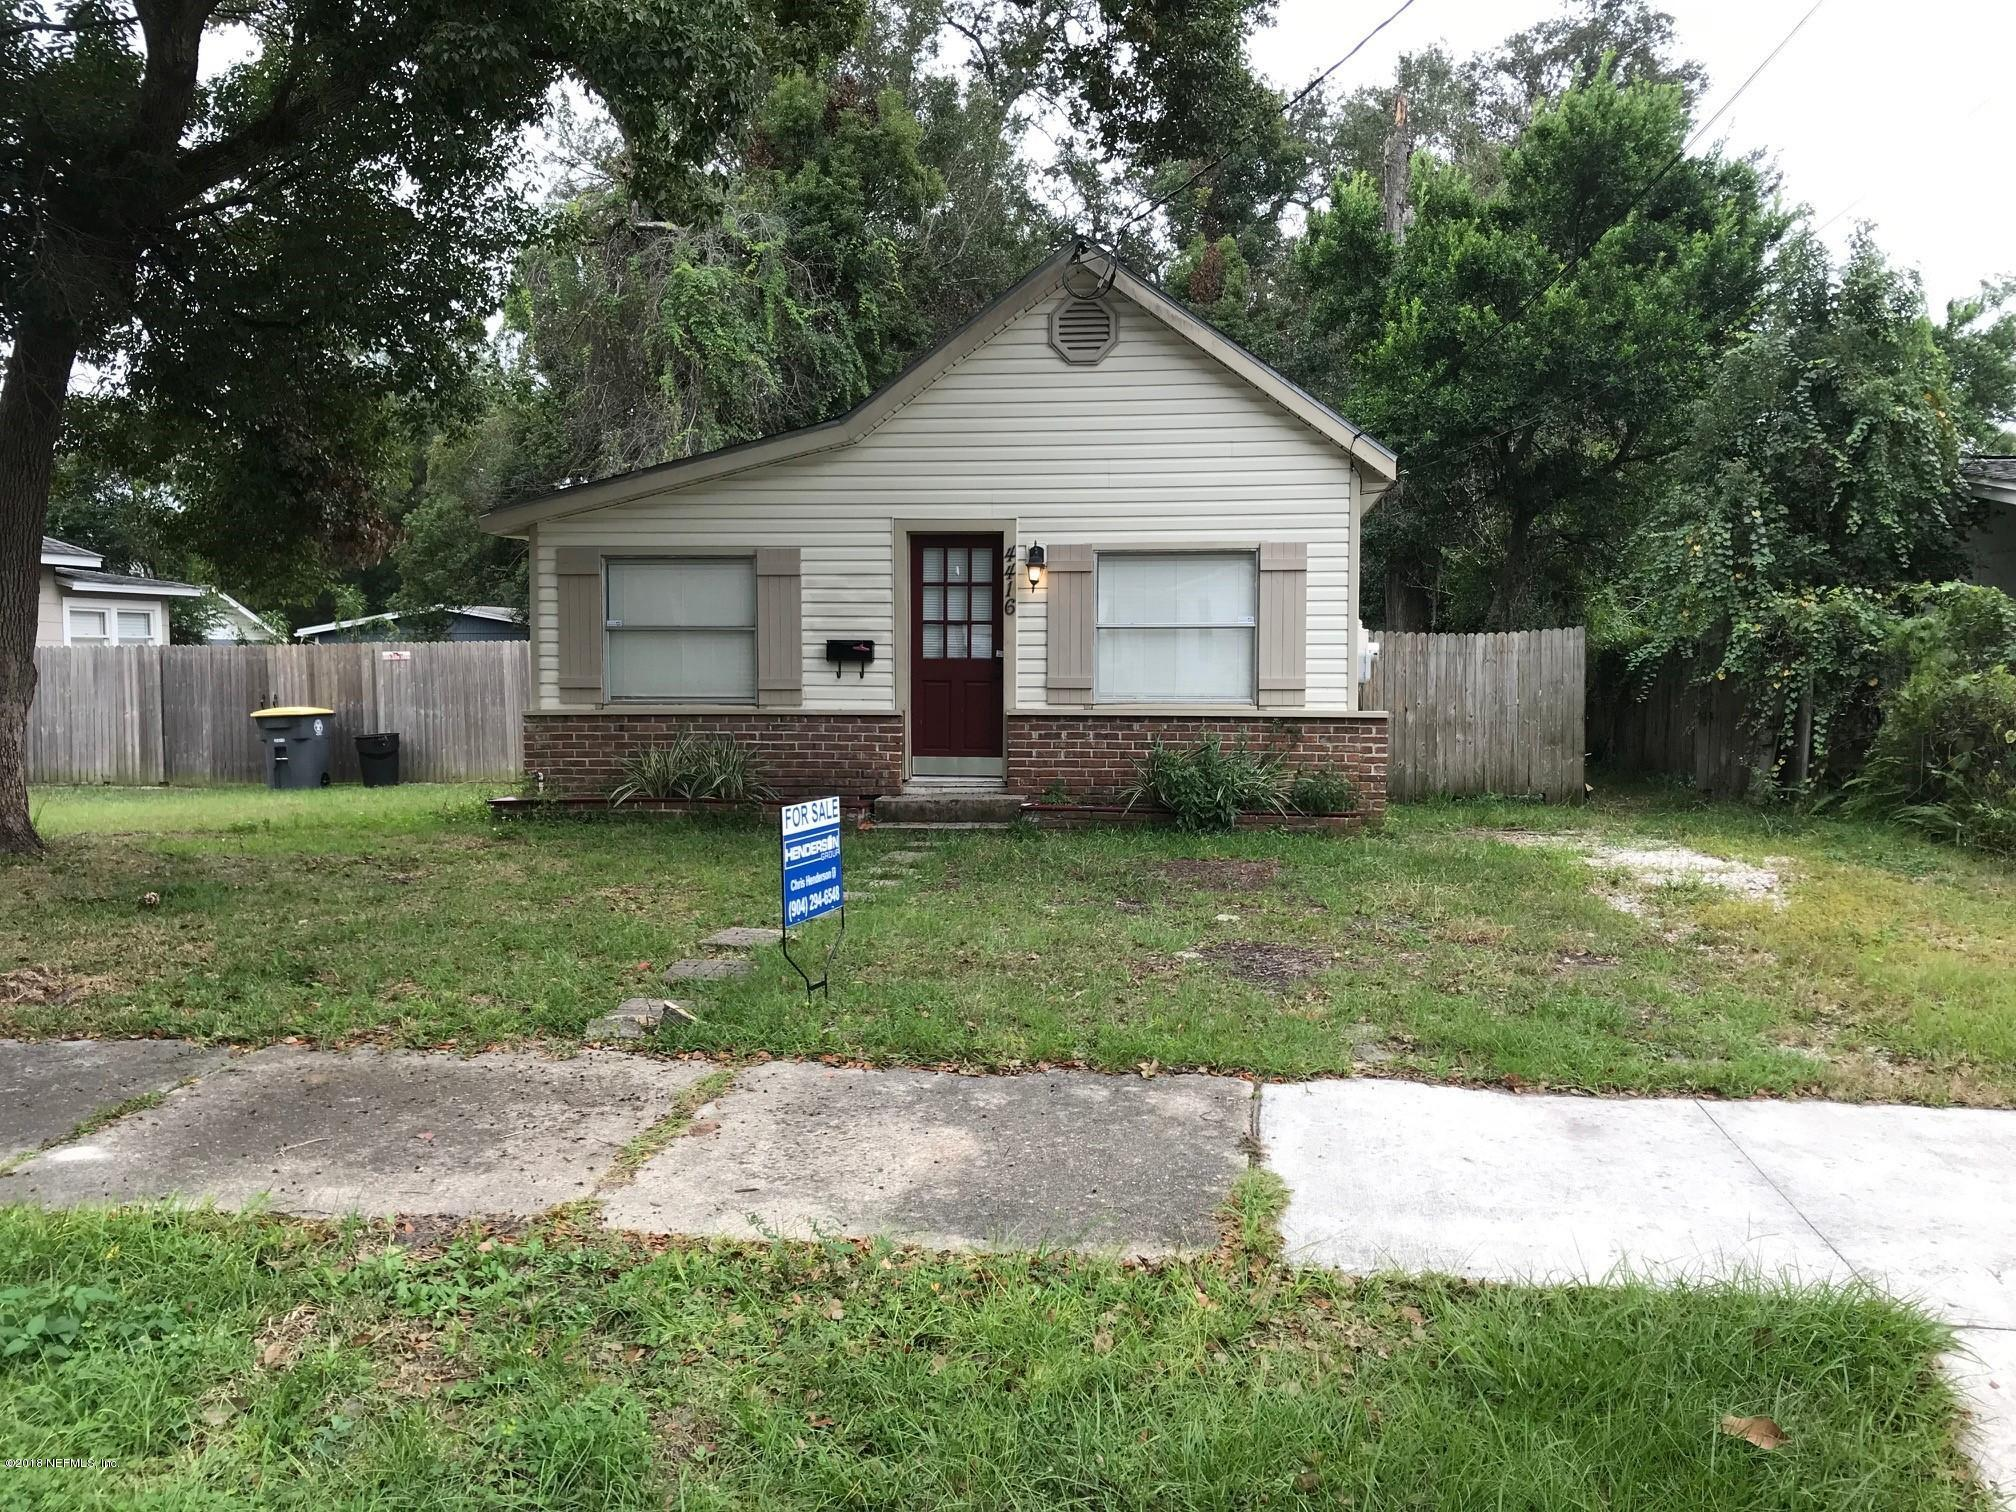 4416 BEVERLY, JACKSONVILLE, FLORIDA 32210, 3 Bedrooms Bedrooms, ,2 BathroomsBathrooms,Residential - single family,For sale,BEVERLY,964317